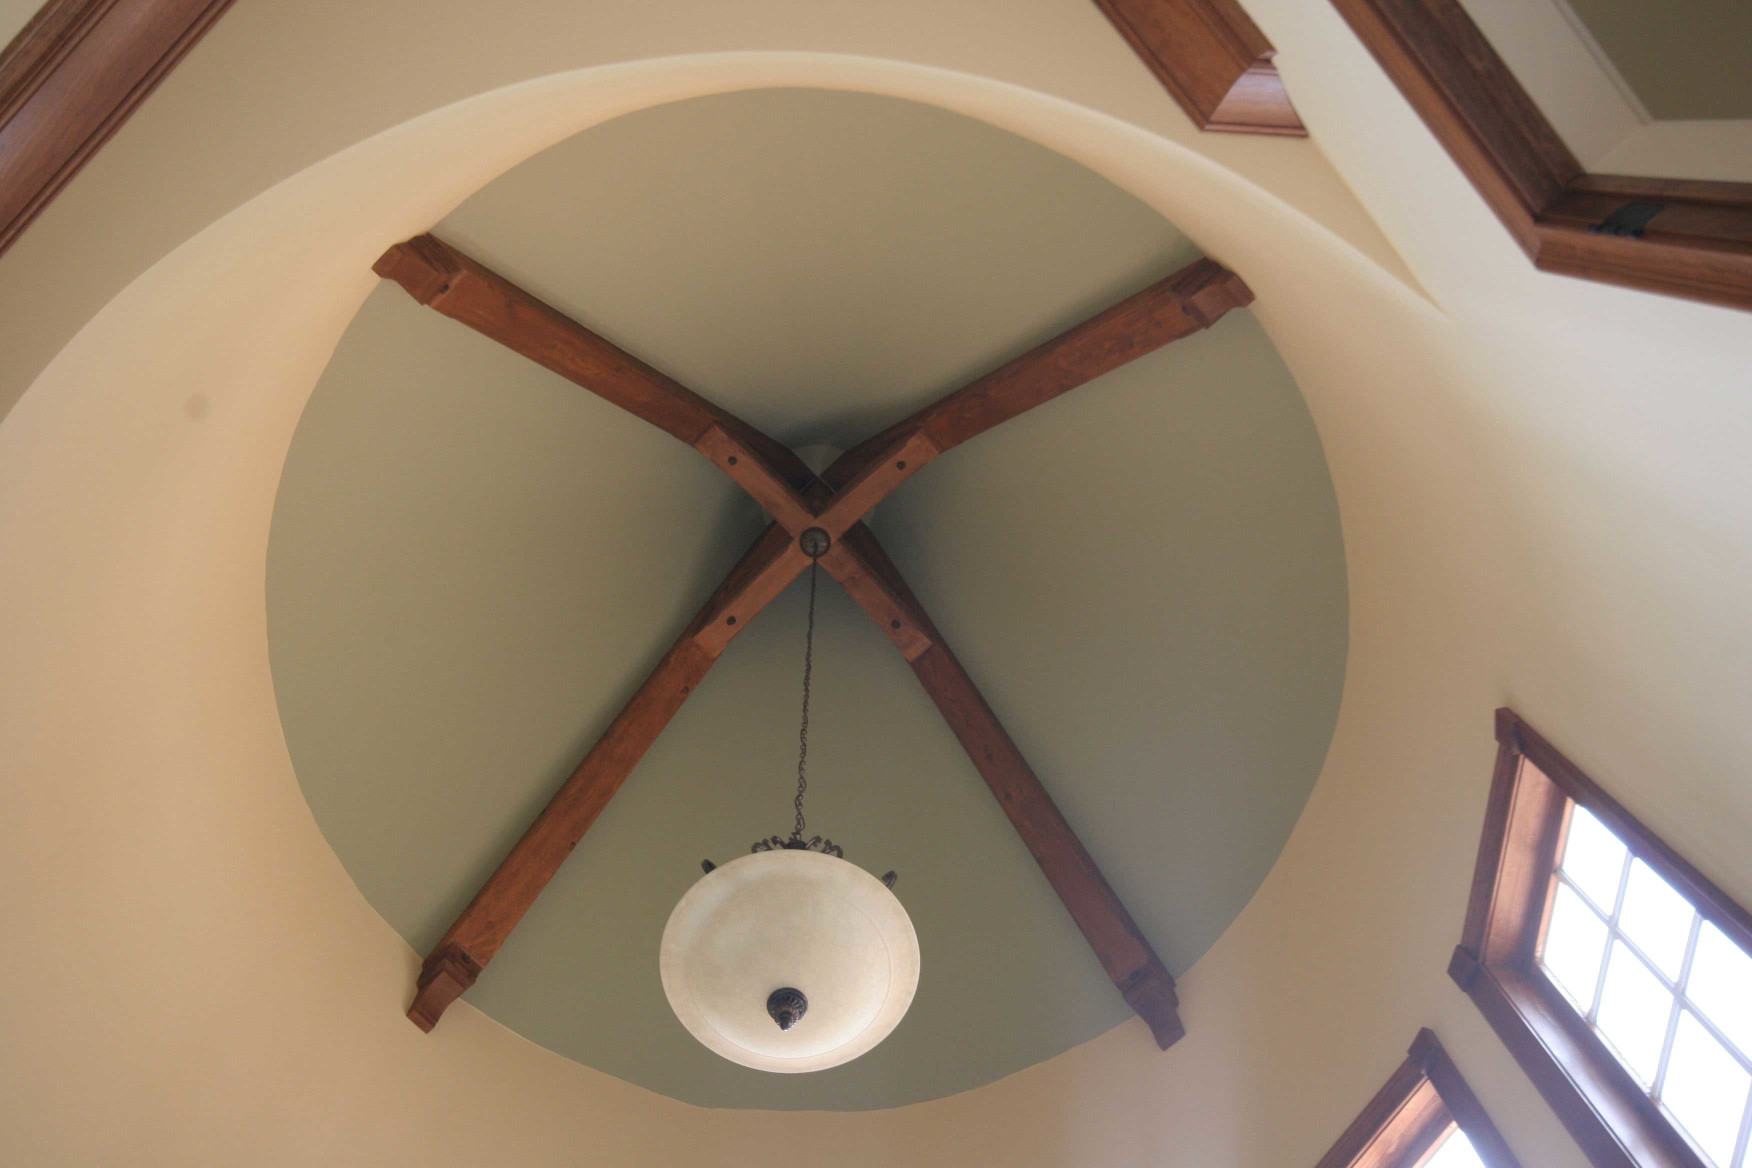 The wood beams, wood braces, and wood corbels in this feature accent this turret ceiling very nicely.